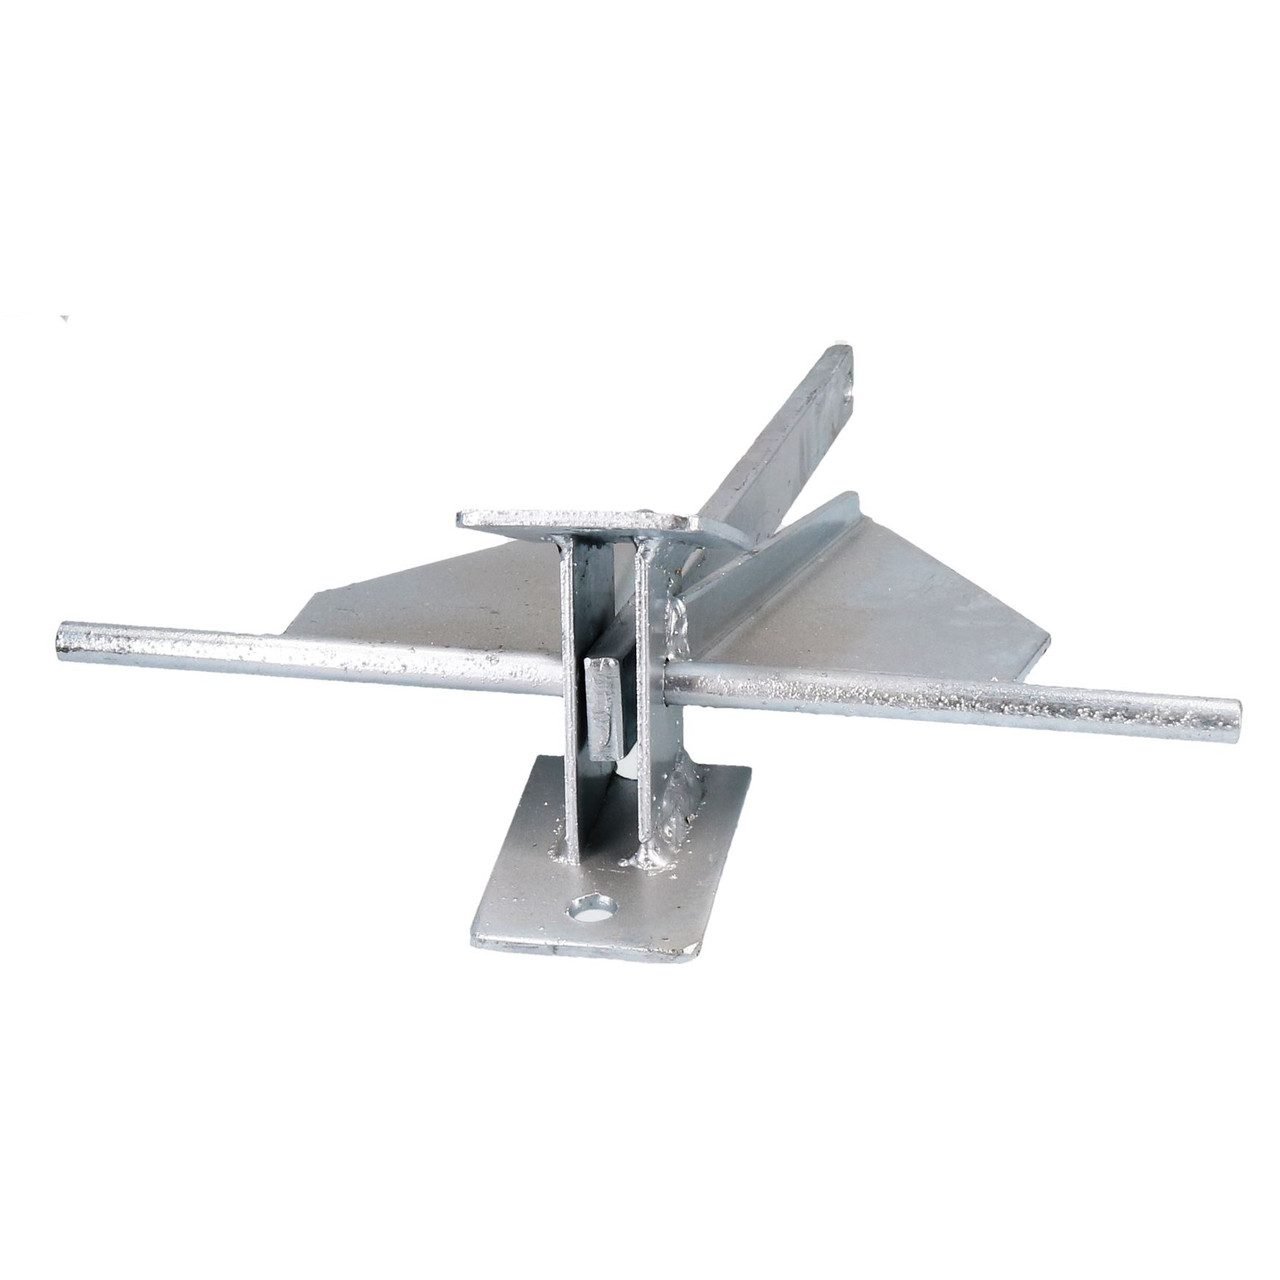 Crown Stock Spade Cruising Anchor 4.5kg Galvanised for Medium Boats / Yachts